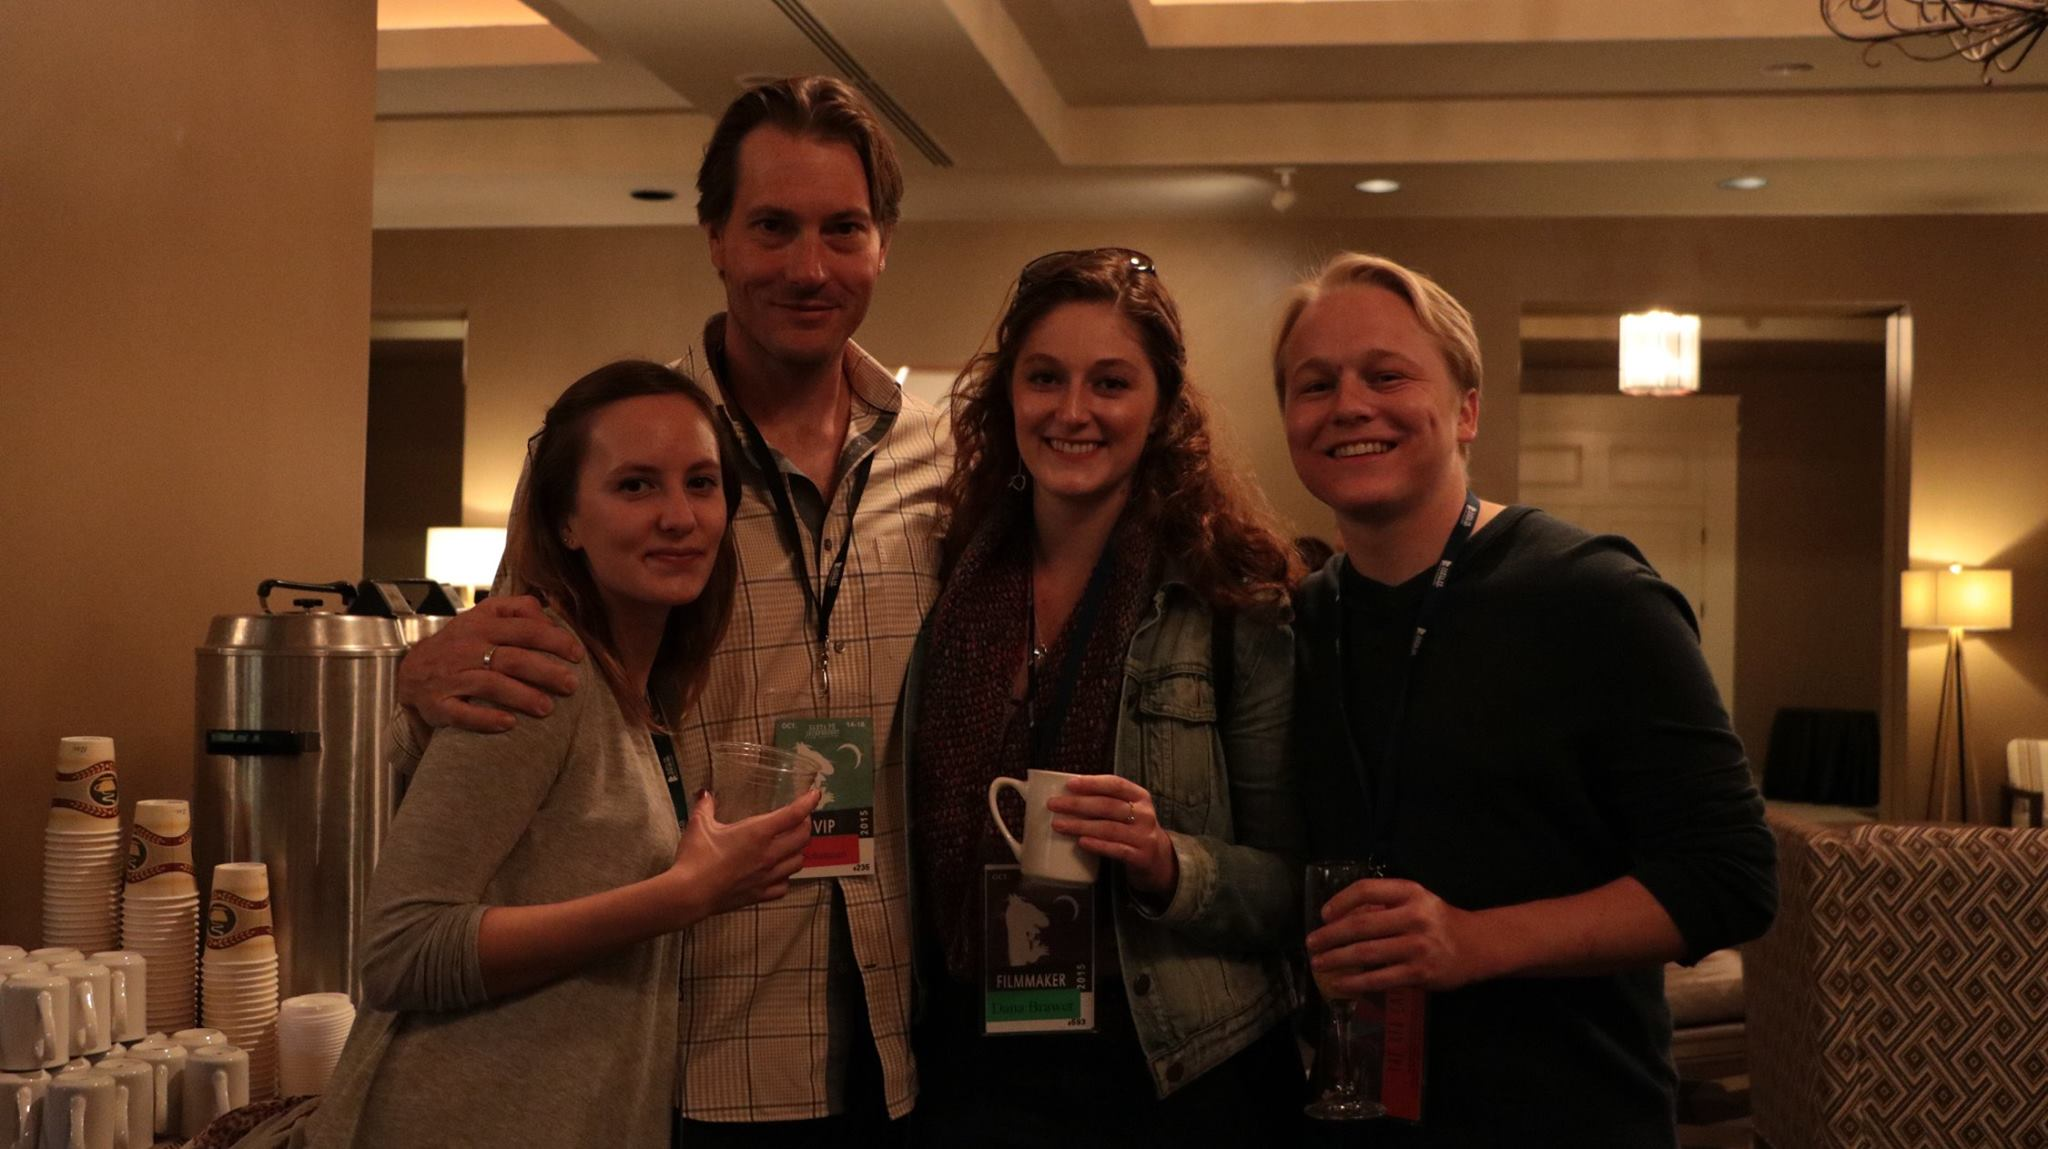 Sean Lee & Dana Brawer with fellow filmmakers